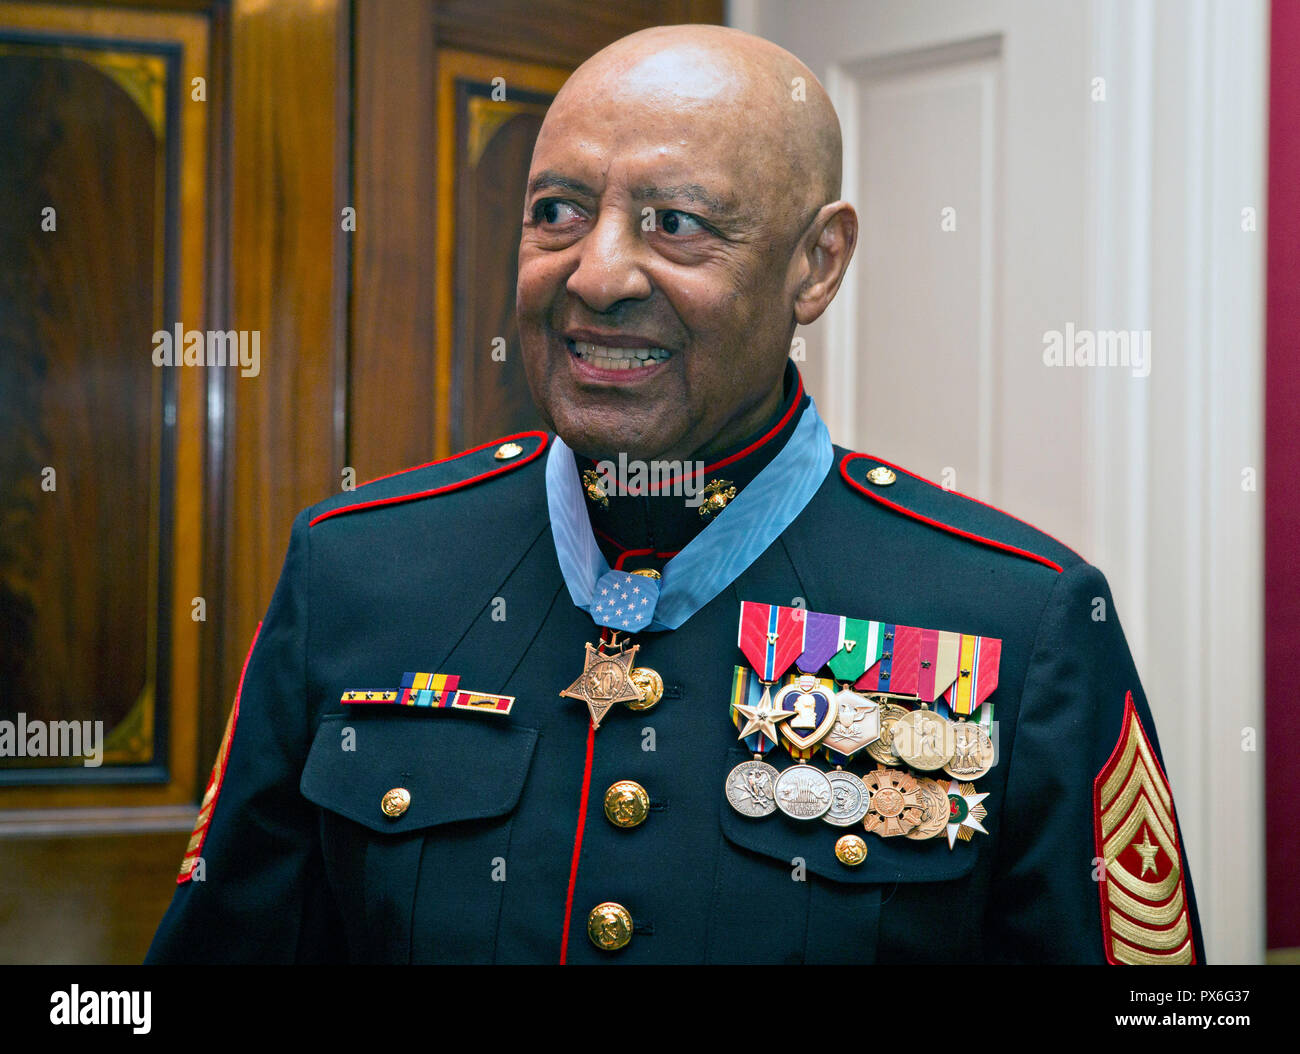 Medal of Honor recipient retired U.S. Marine Sgt. Maj. John Canley smiles following the presentation ceremony at the White House October 17, 2018 in Washington, DC. Canley received the nations highest honor for actions during the Battle of Hue in the Vietnam War. Stock Photo